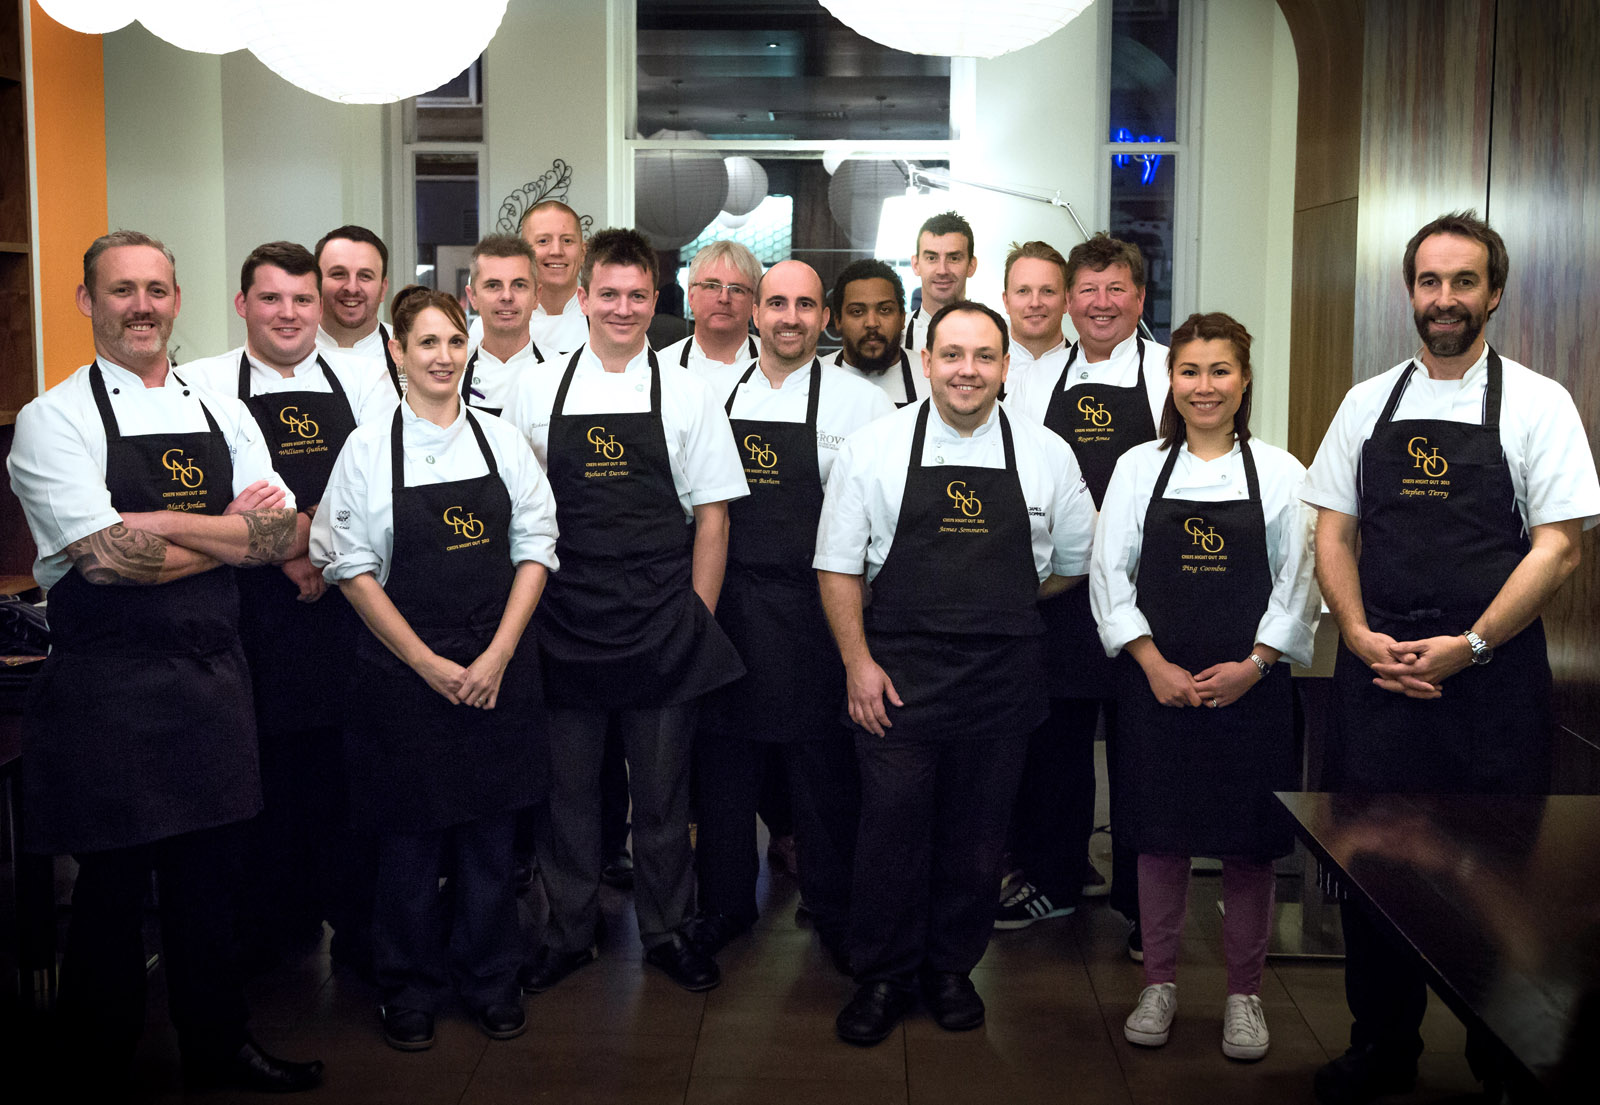 Read more about Chef's Night Out